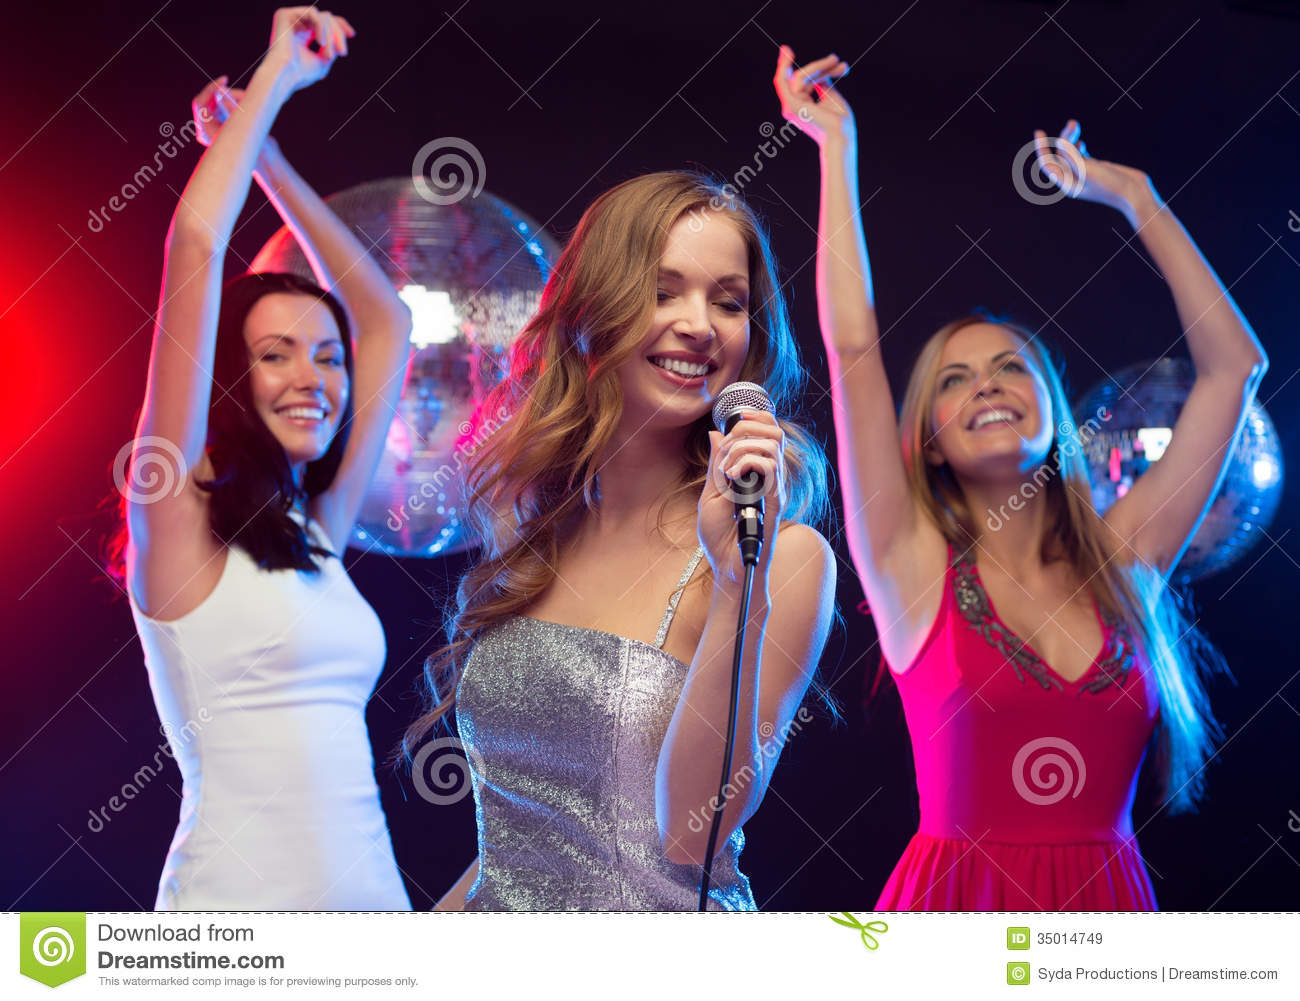 Atomic Kitten - Ladies Night / Be With You